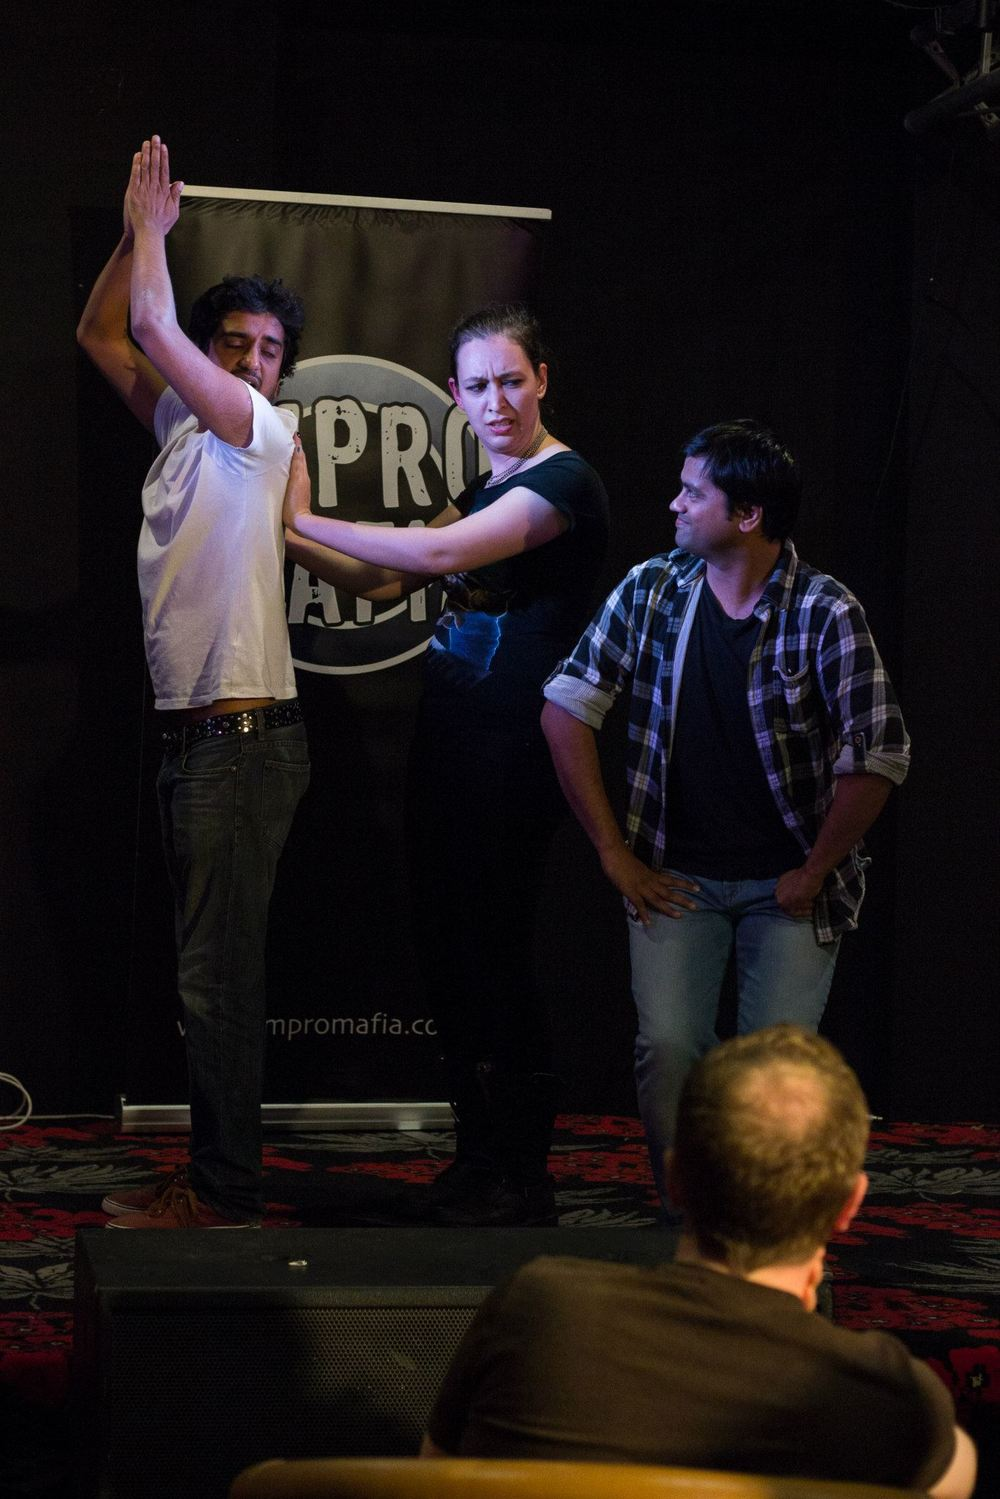 Rare evidence of Ashwin improvising at Double Shot Impro.